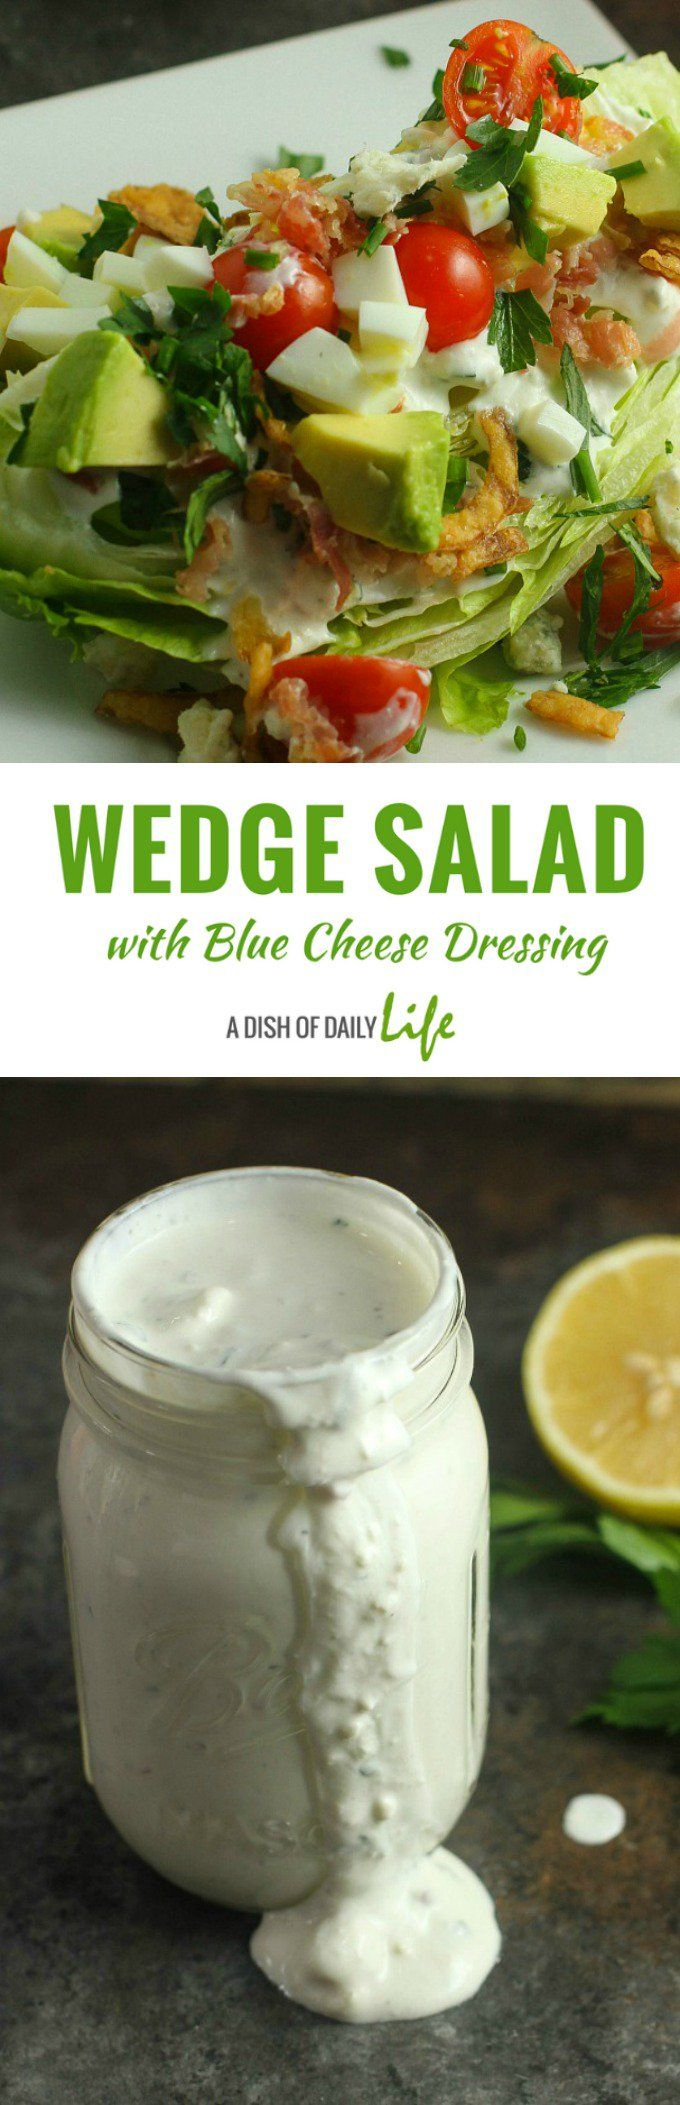 This Wedge Salad is topped with the most AH-MAZING Blue Cheese Dressing in this elegant dinner party menu! #salad #WedgeSalad #BlueCheeseDressing